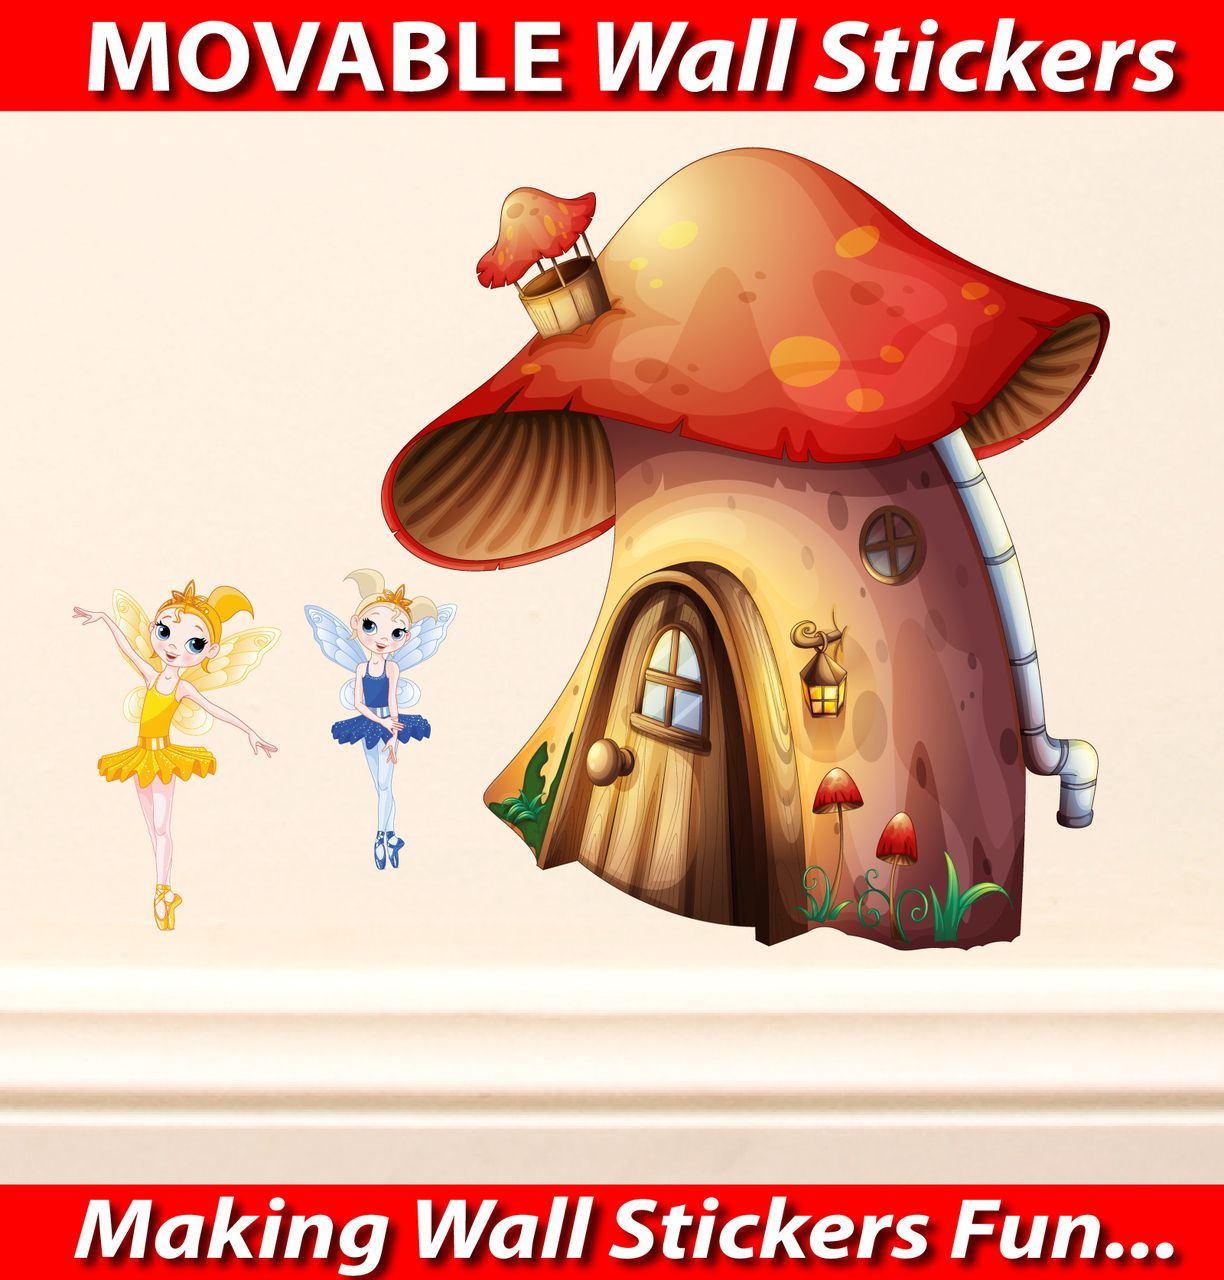 Fairies house wall stickers totally movable wall